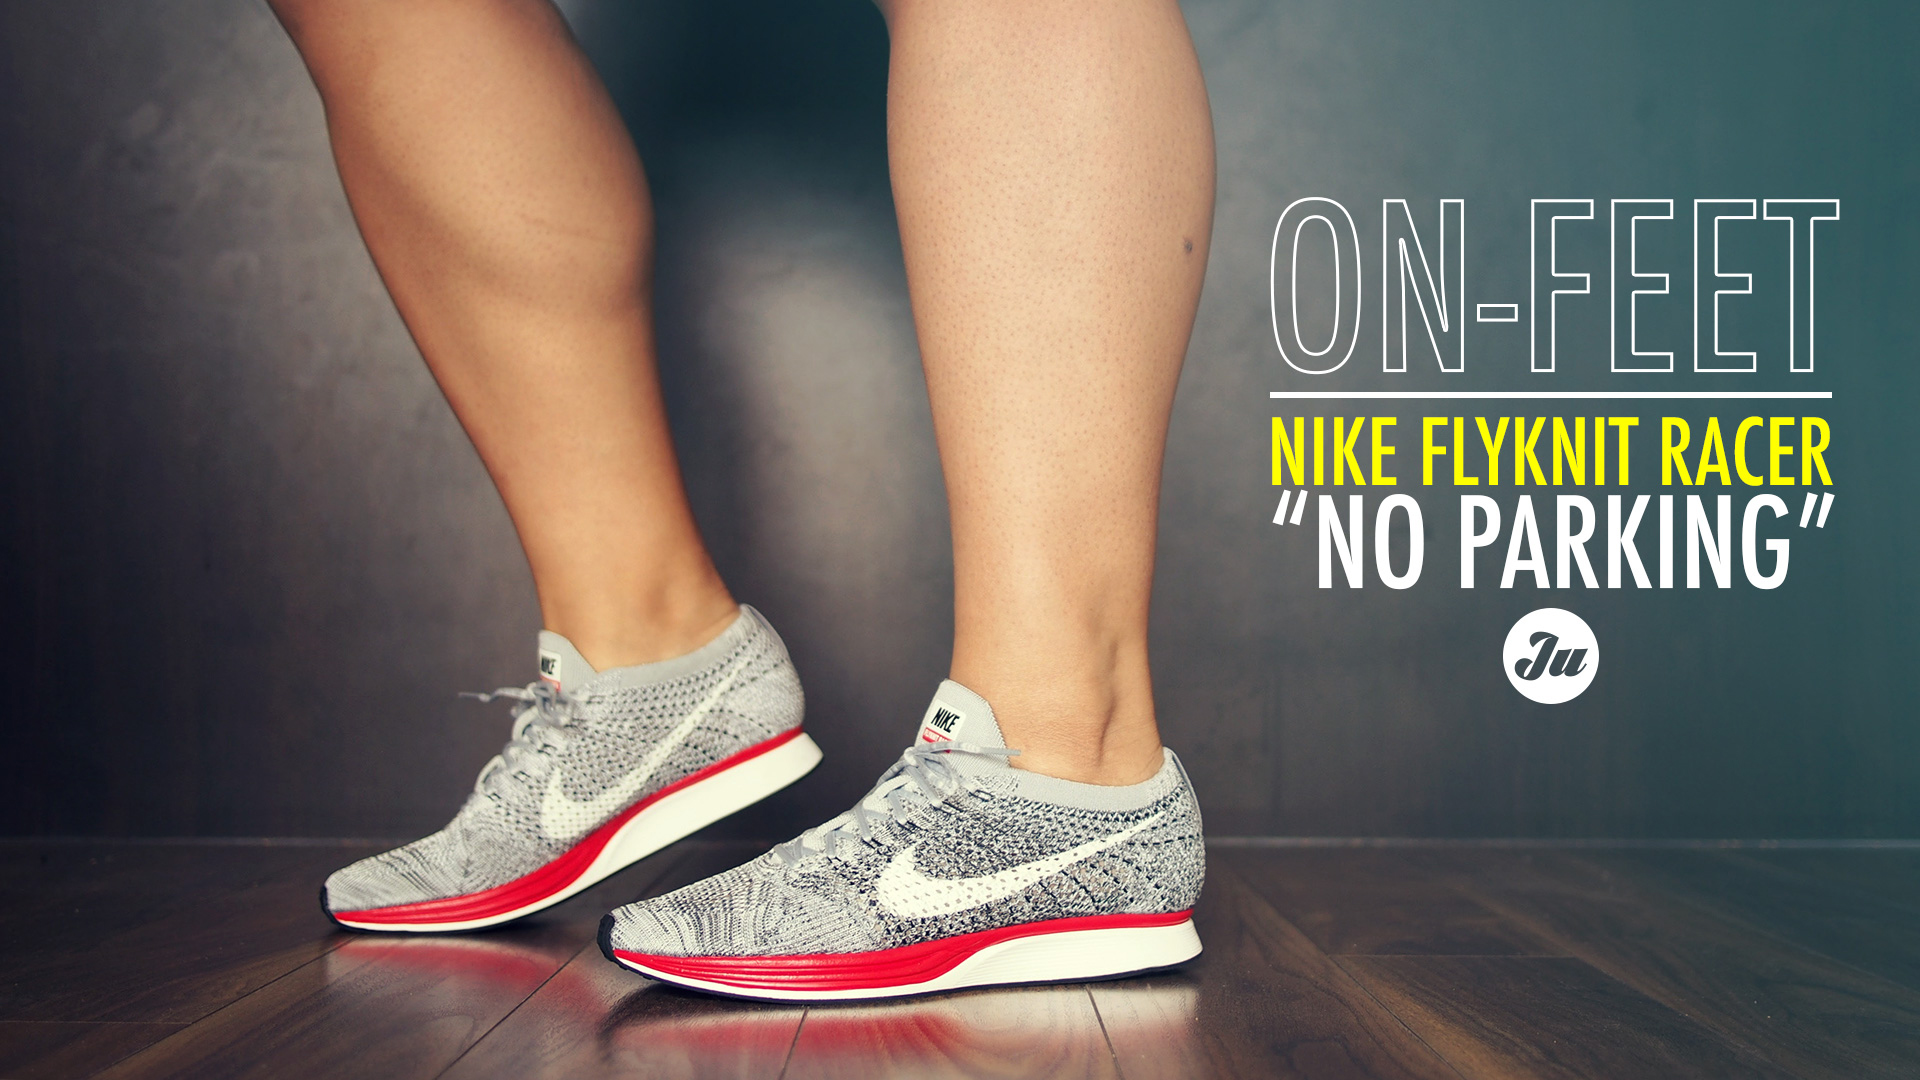 62133d2bac75 On-feet video  Found a pair of Nike Flyknit Racer